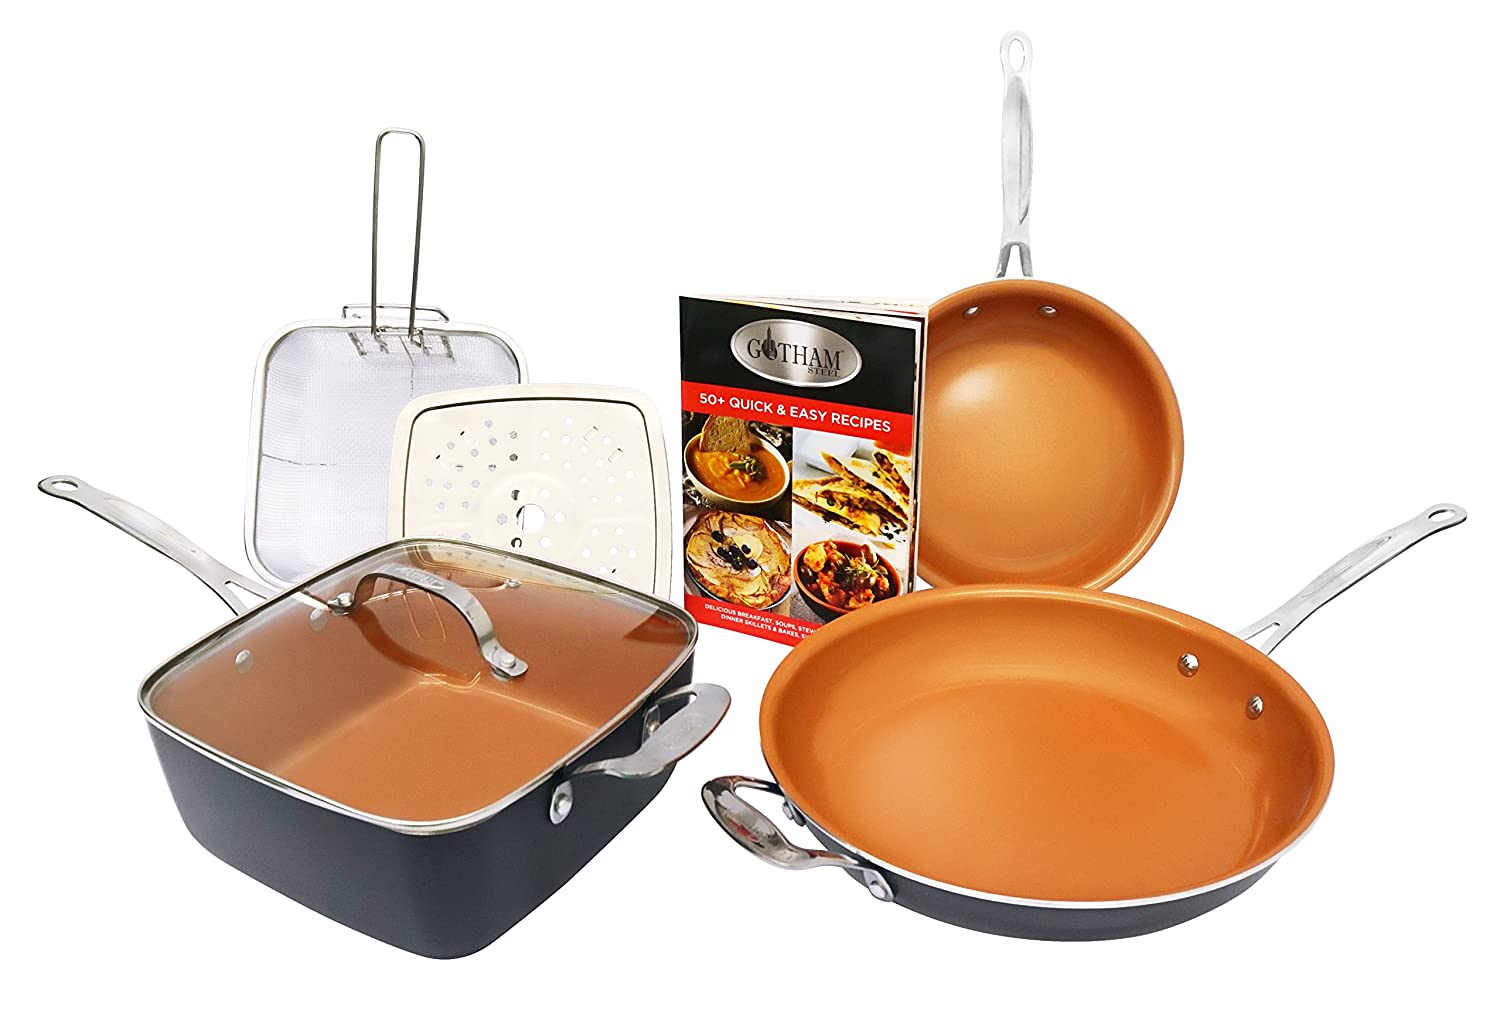 Titanium or ceramic pans. Customer reviews as the best feature 90